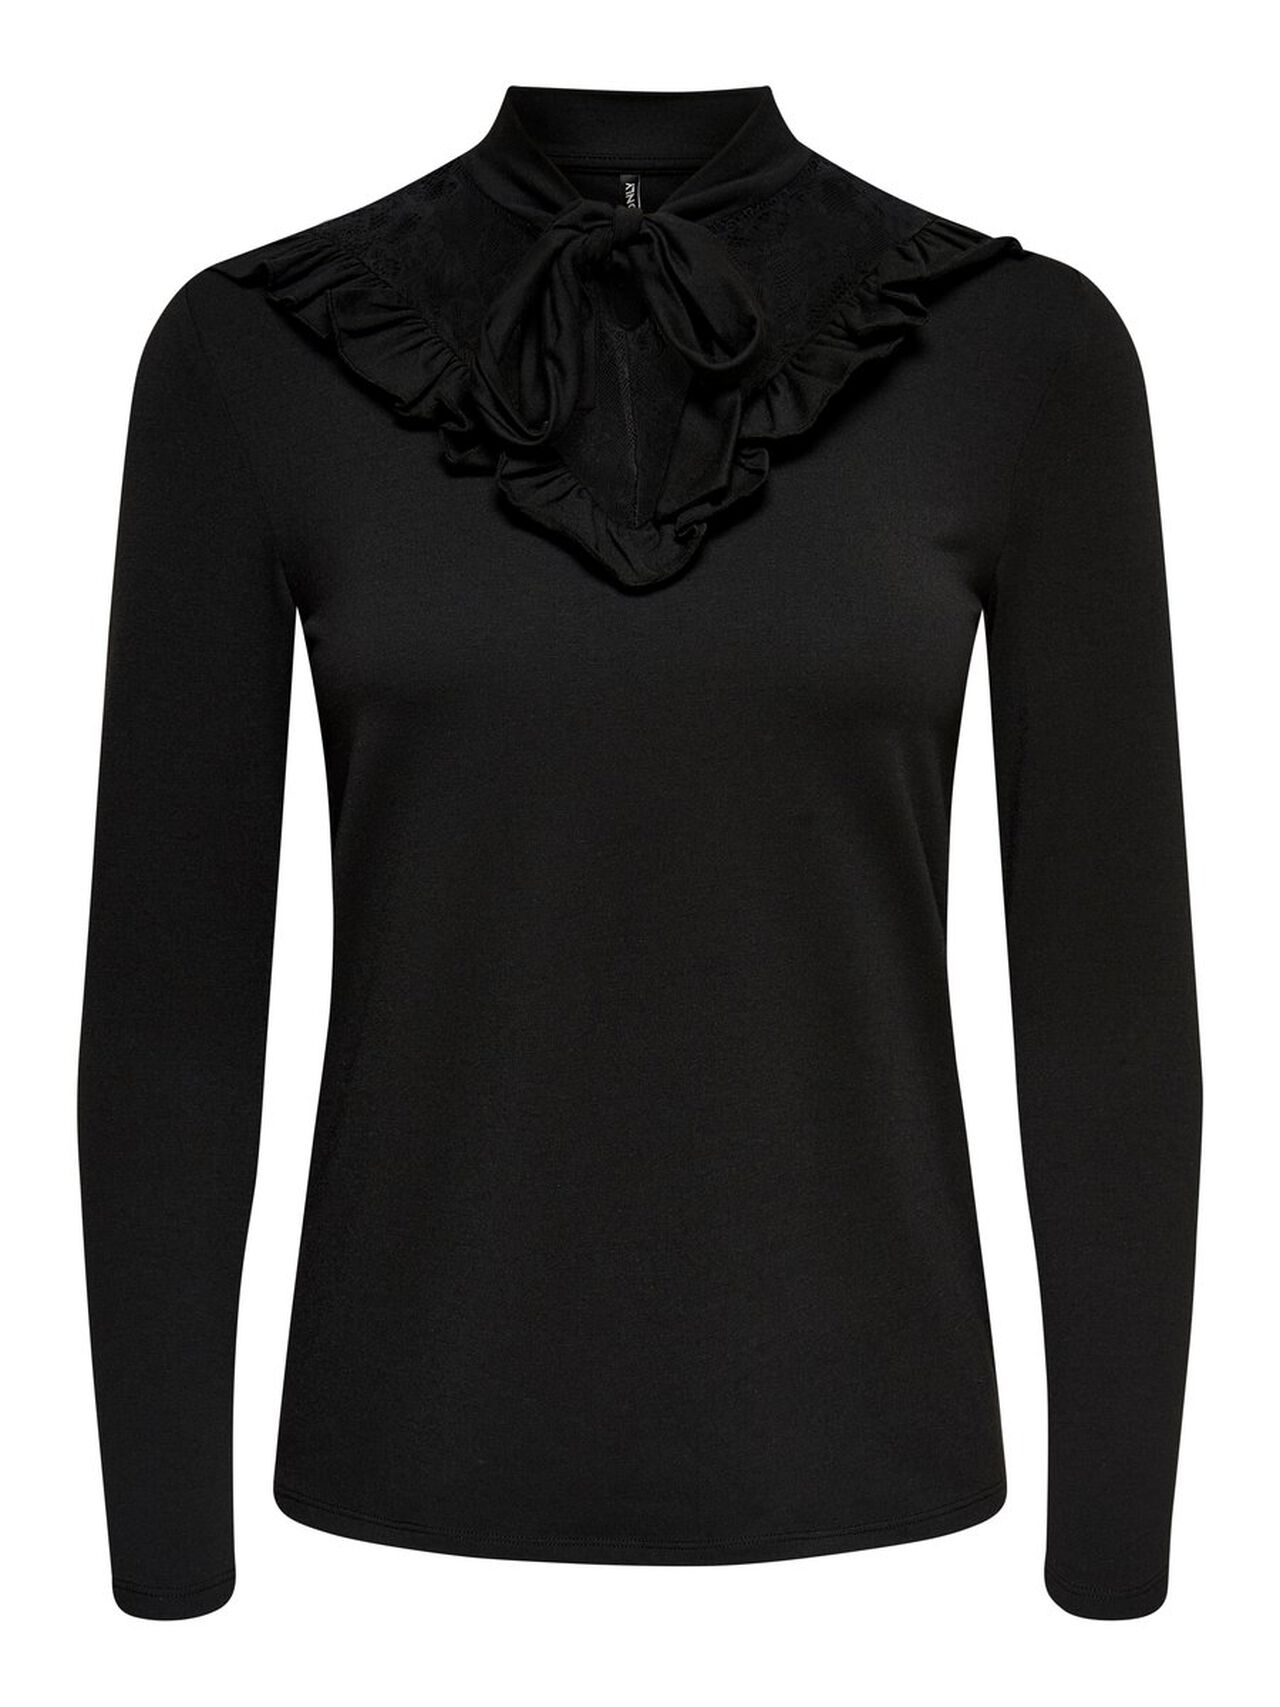 ONLY Detailed Long Sleeved Top Women Black